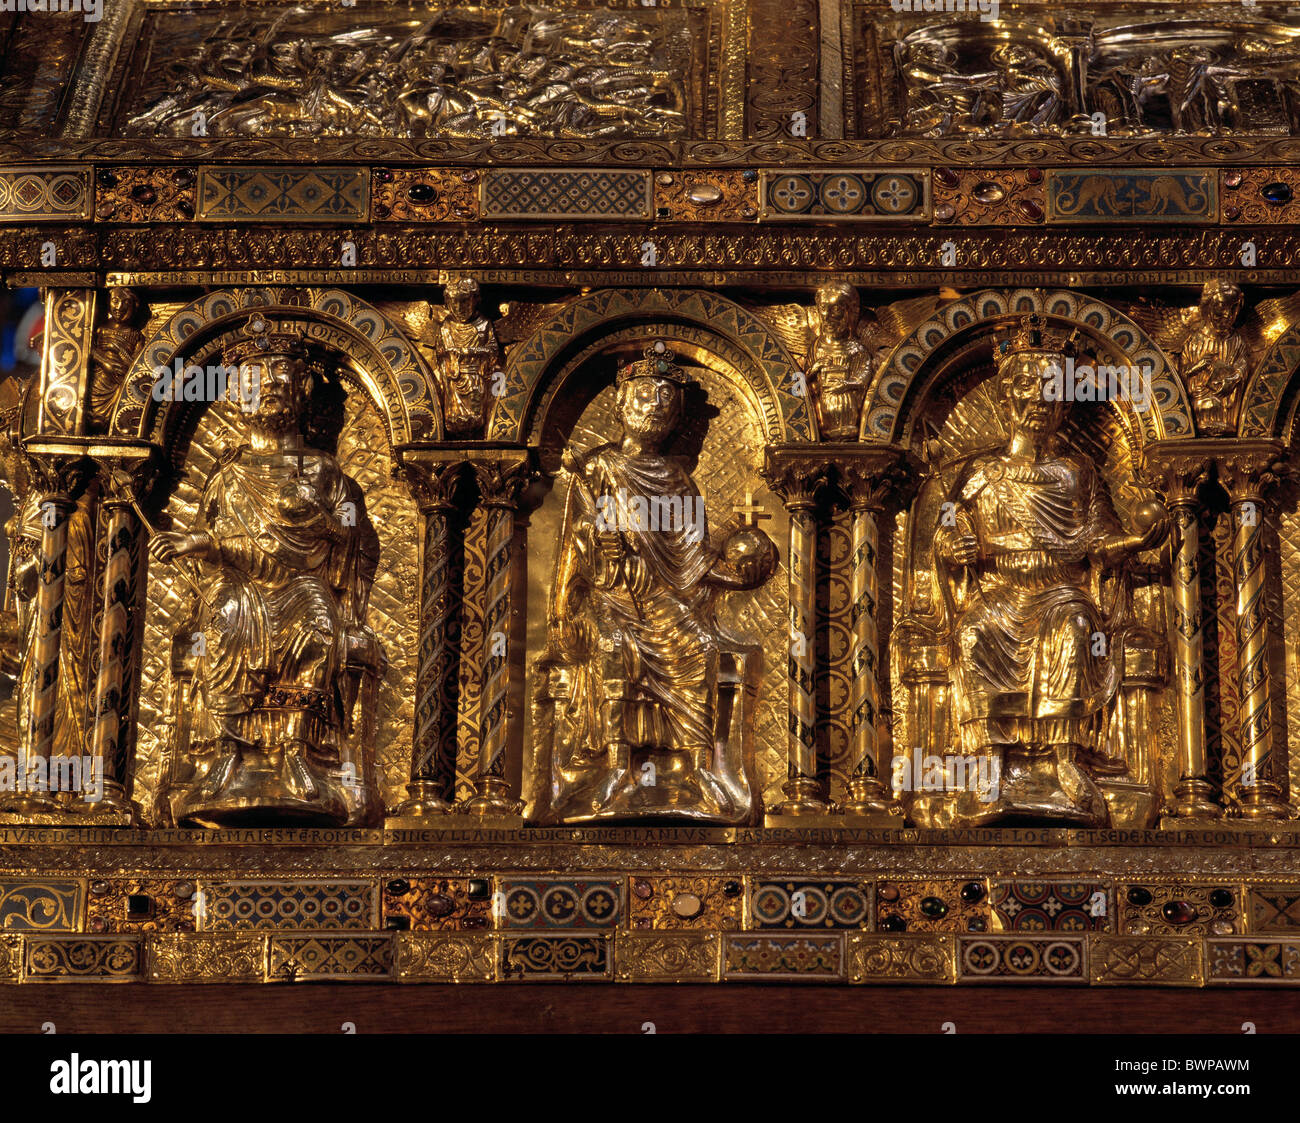 germany europe aix la chapelle aachen cathedral charlemagne charles the great shrine emperor rhineland north aix la chapelle cathedral